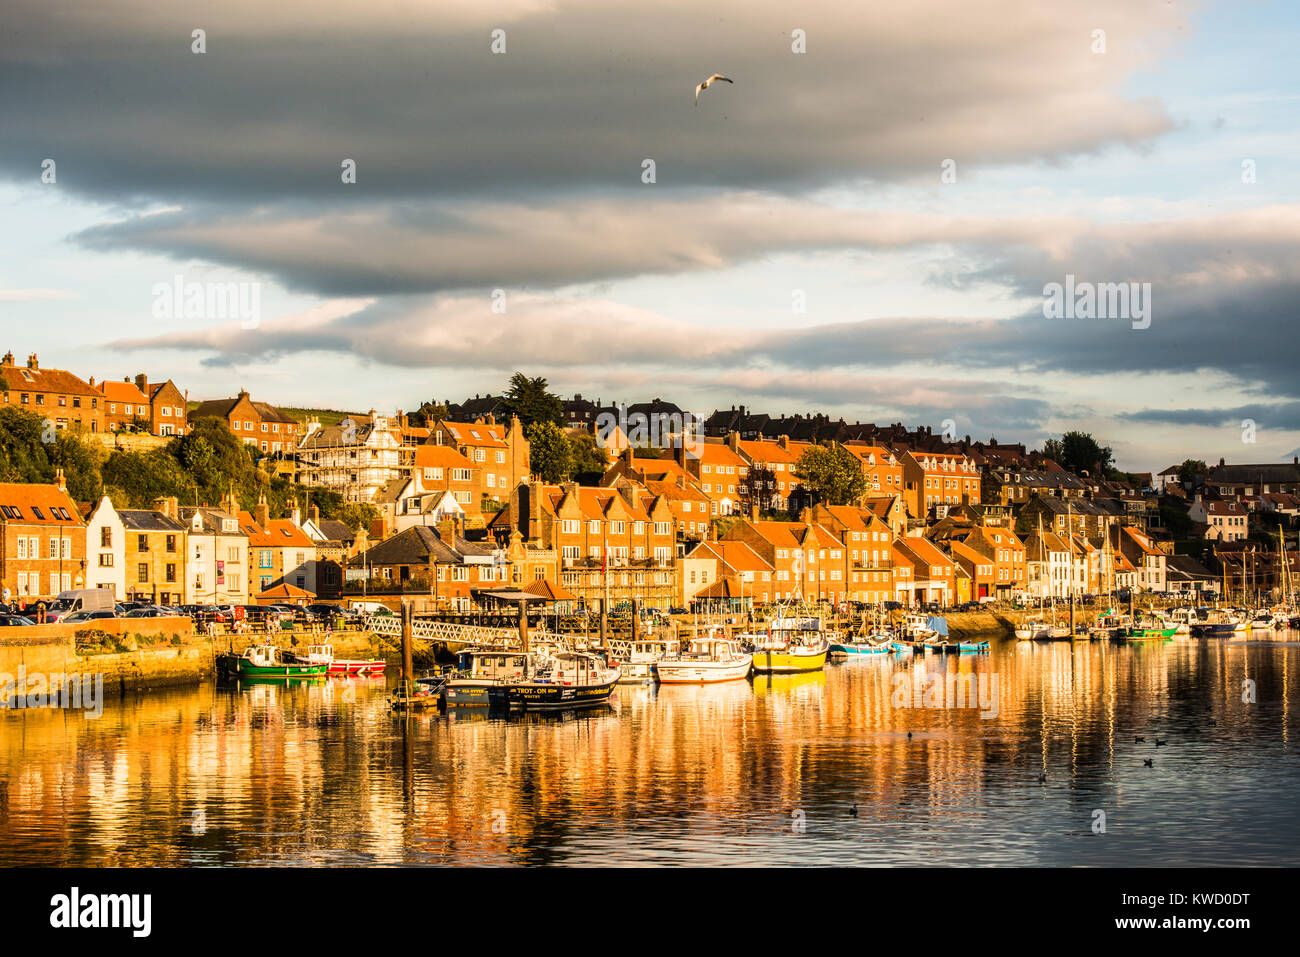 Evening light in Whitby Yorkshire Ray Boswell - Stock Image